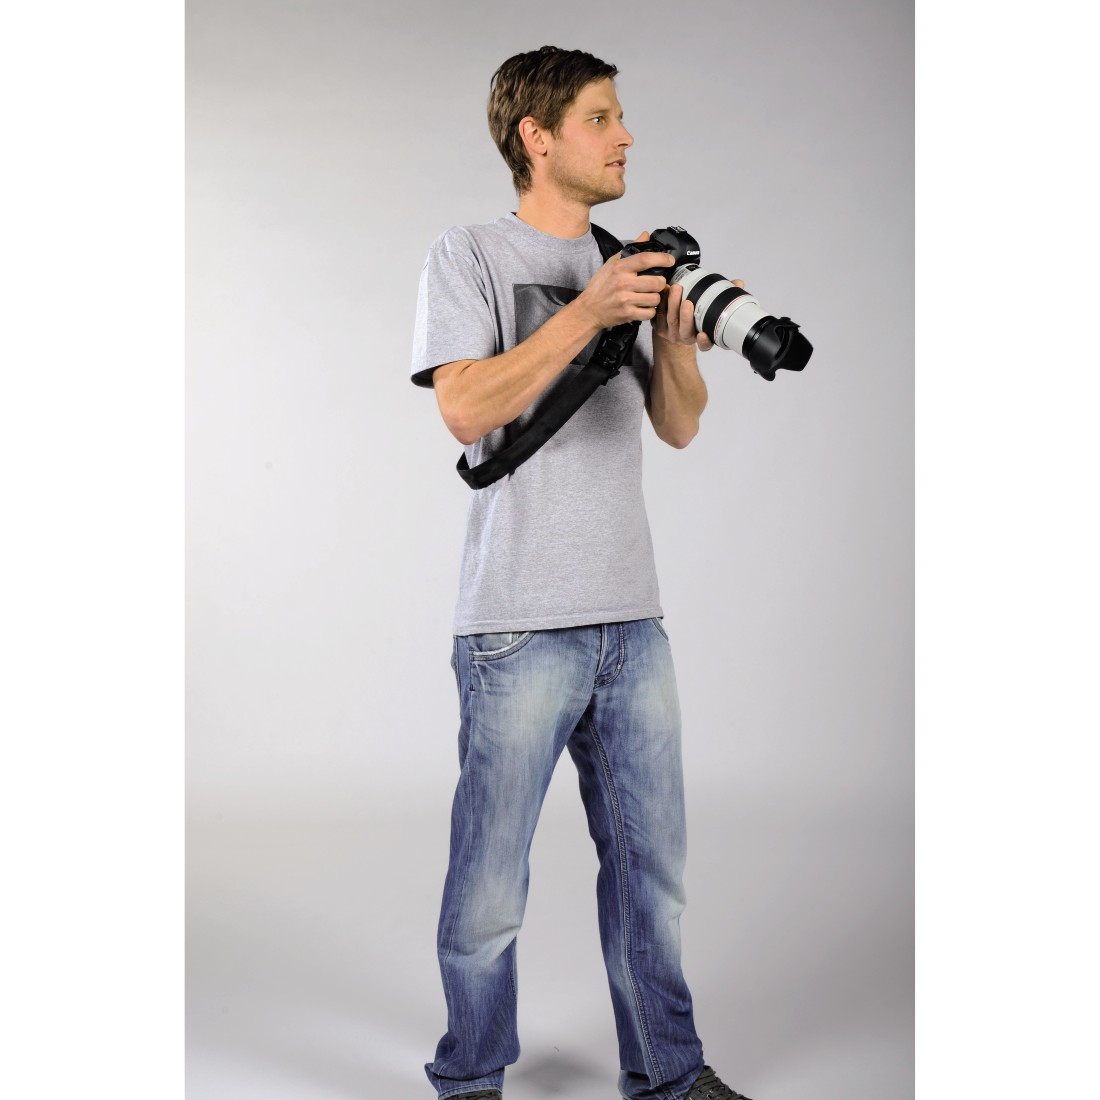 awx5 High-Res Appliance 5 - Hama, Quick Shoot Strap Carrying Strap for SLR Cameras